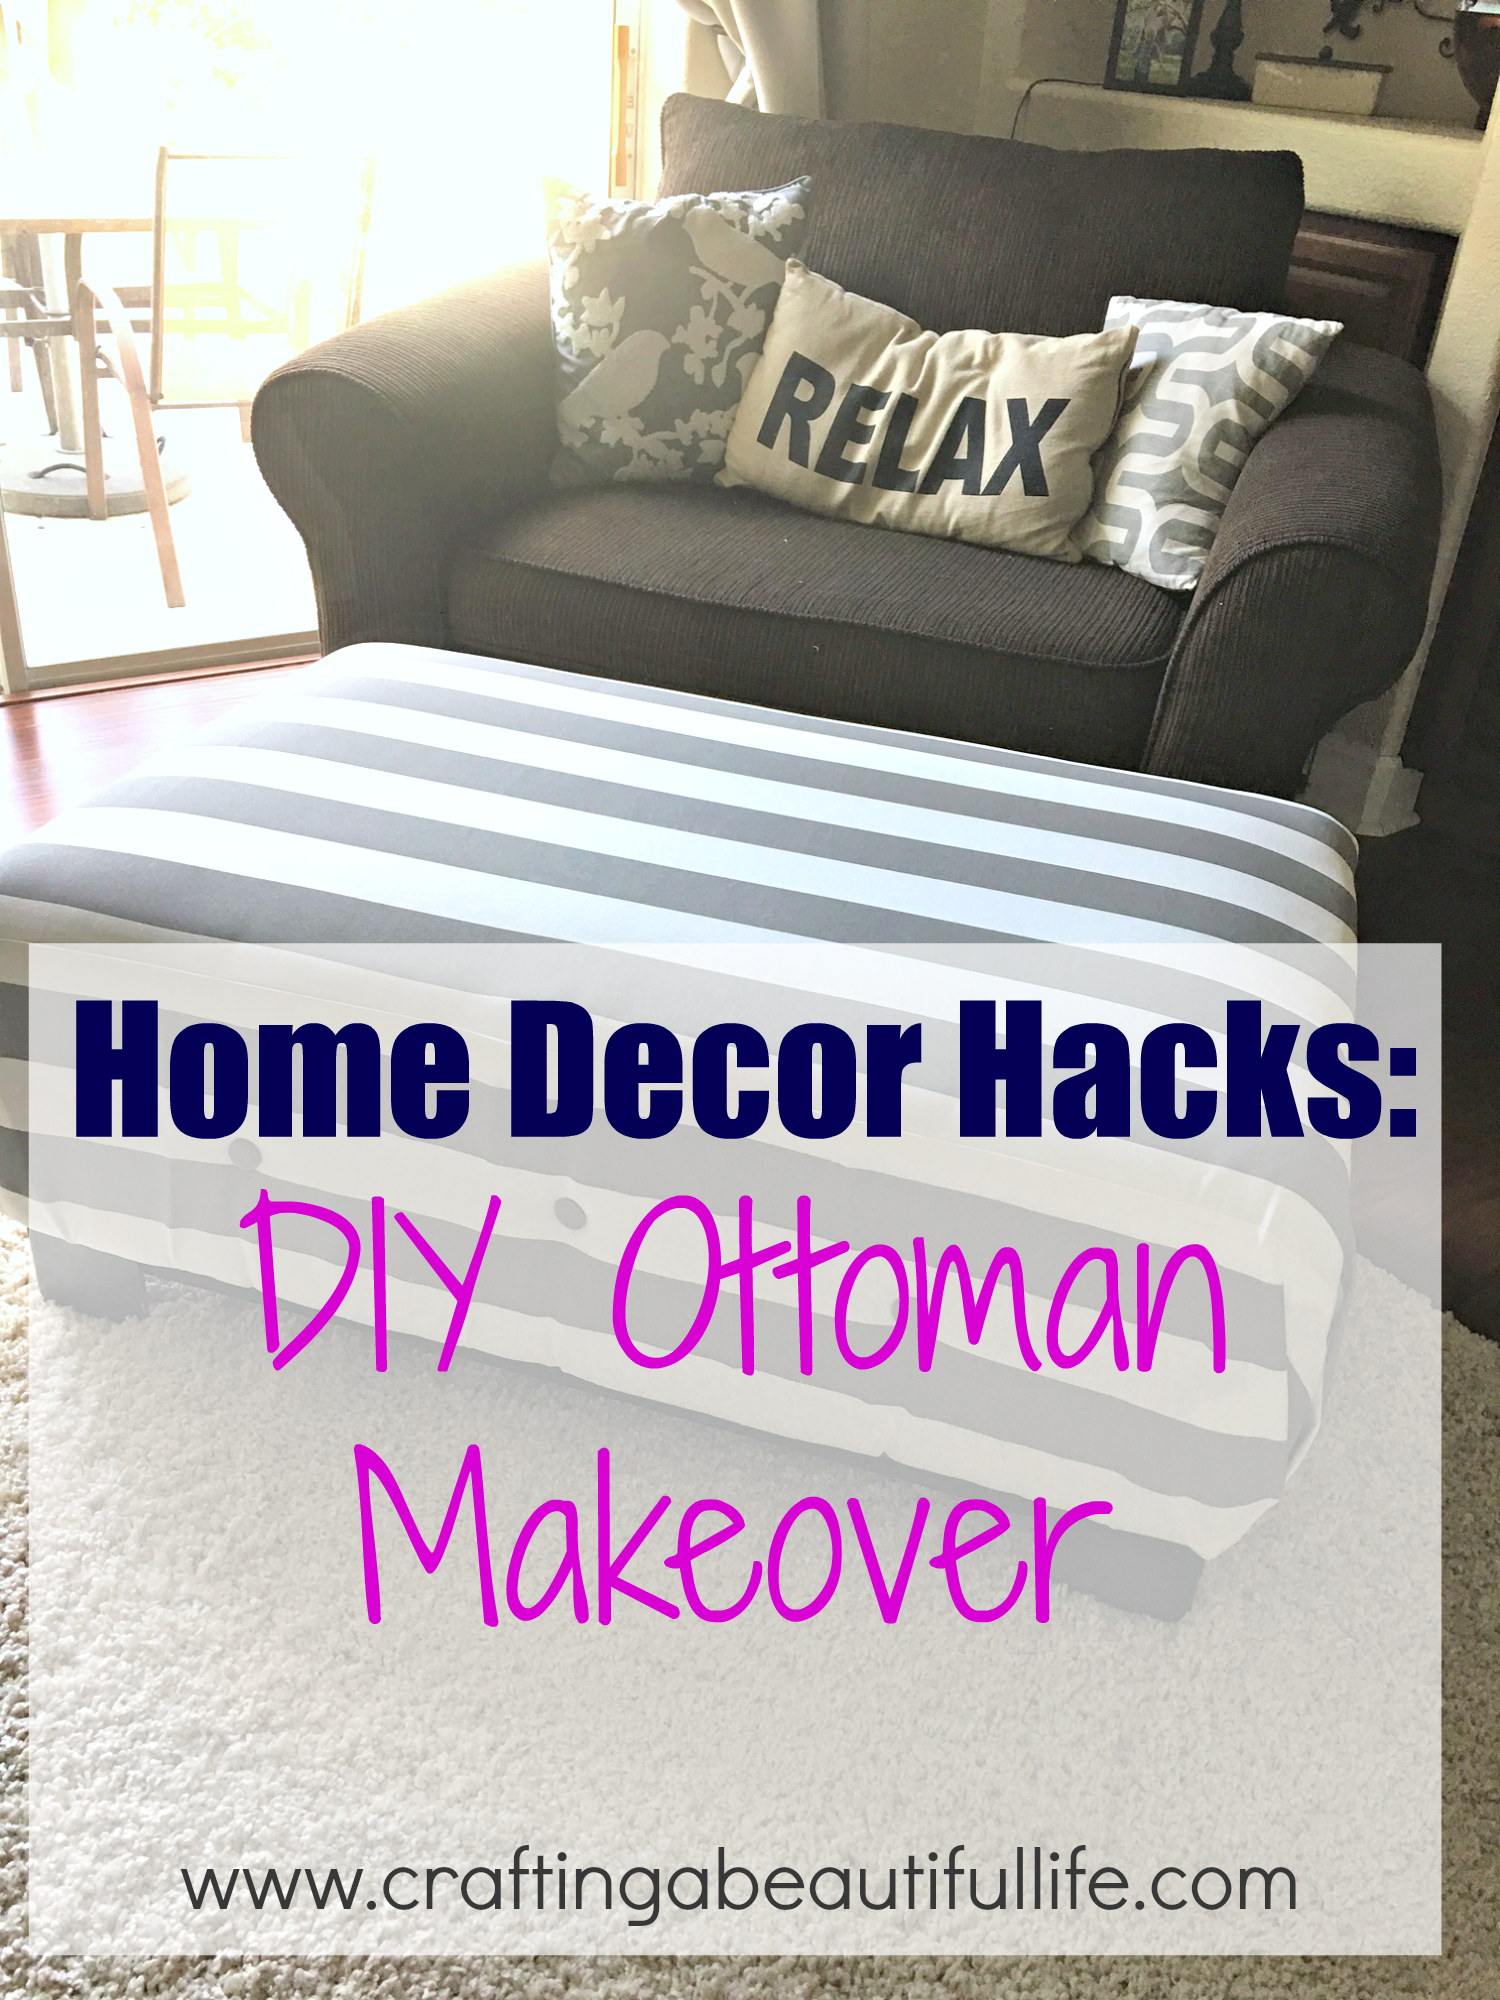 Home decor hacks for recovering an old ottoman in your home for Home decor hacks